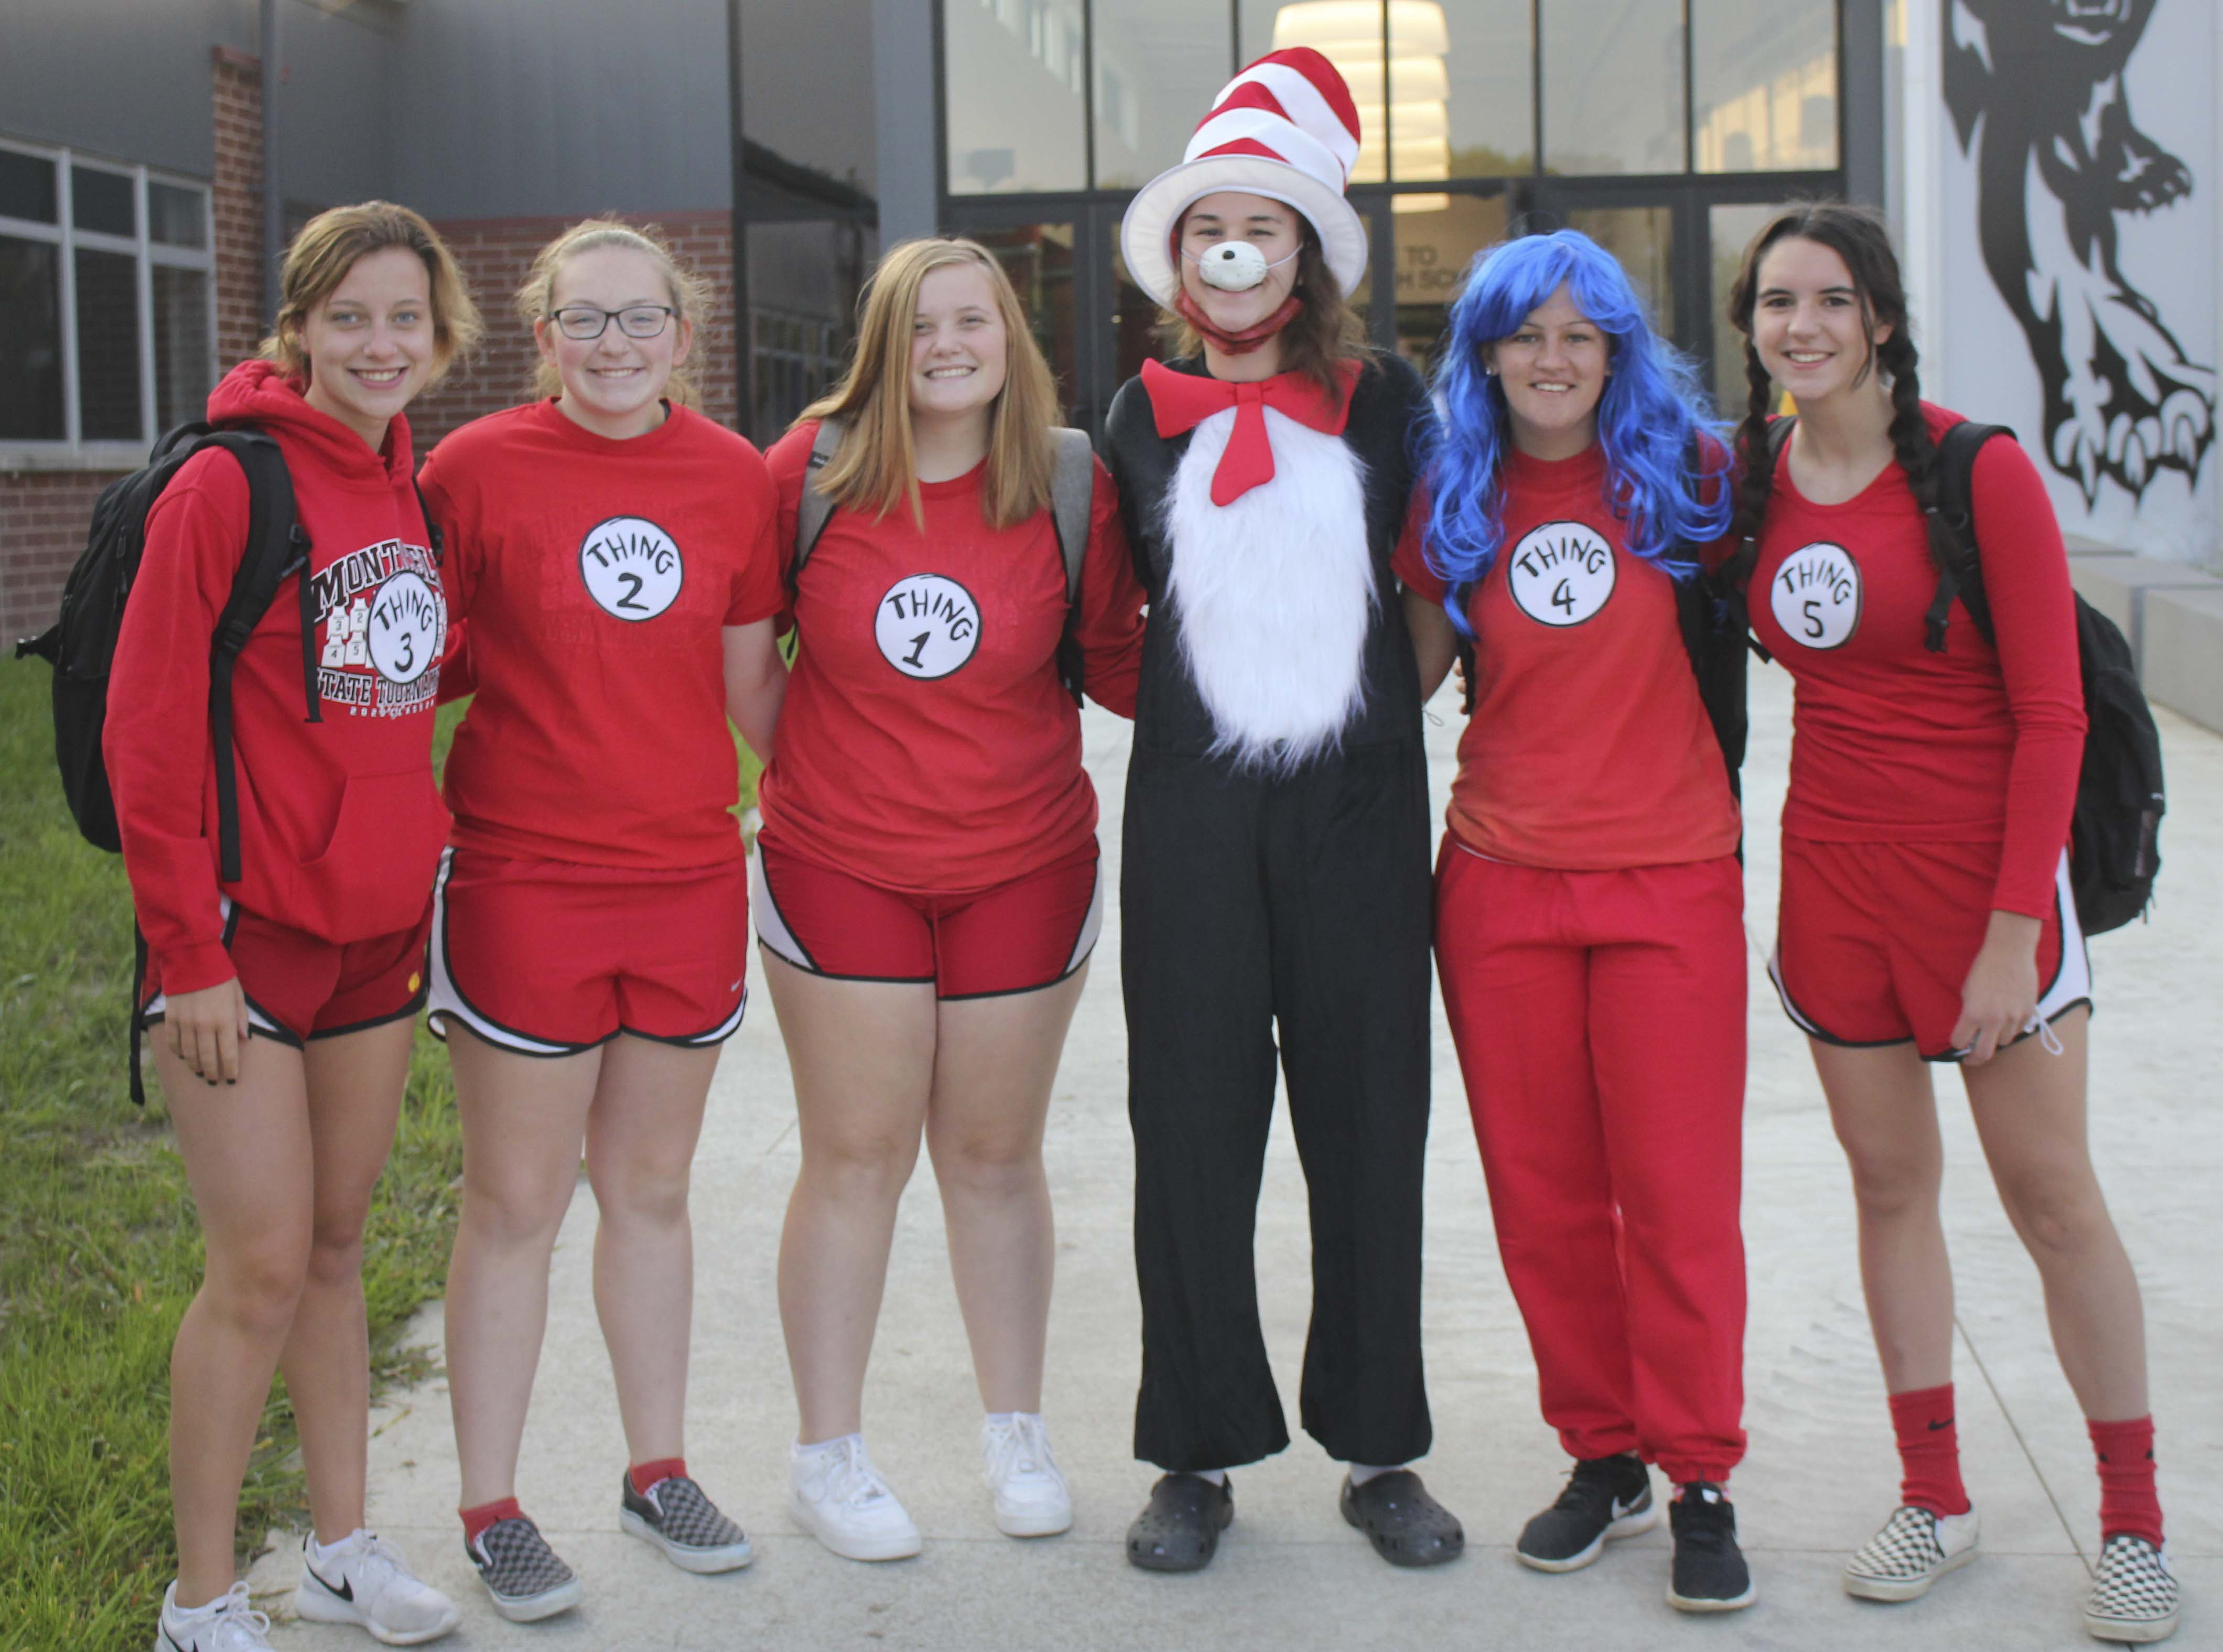 """Dressing as """"The Cat in the Hat"""" characters for Character Day, from left: Reese Cox, Kacie Rickels, Hannah Ahlrichs, Megan Mahoney, Brooklyn Stark and Hailey Wilson."""